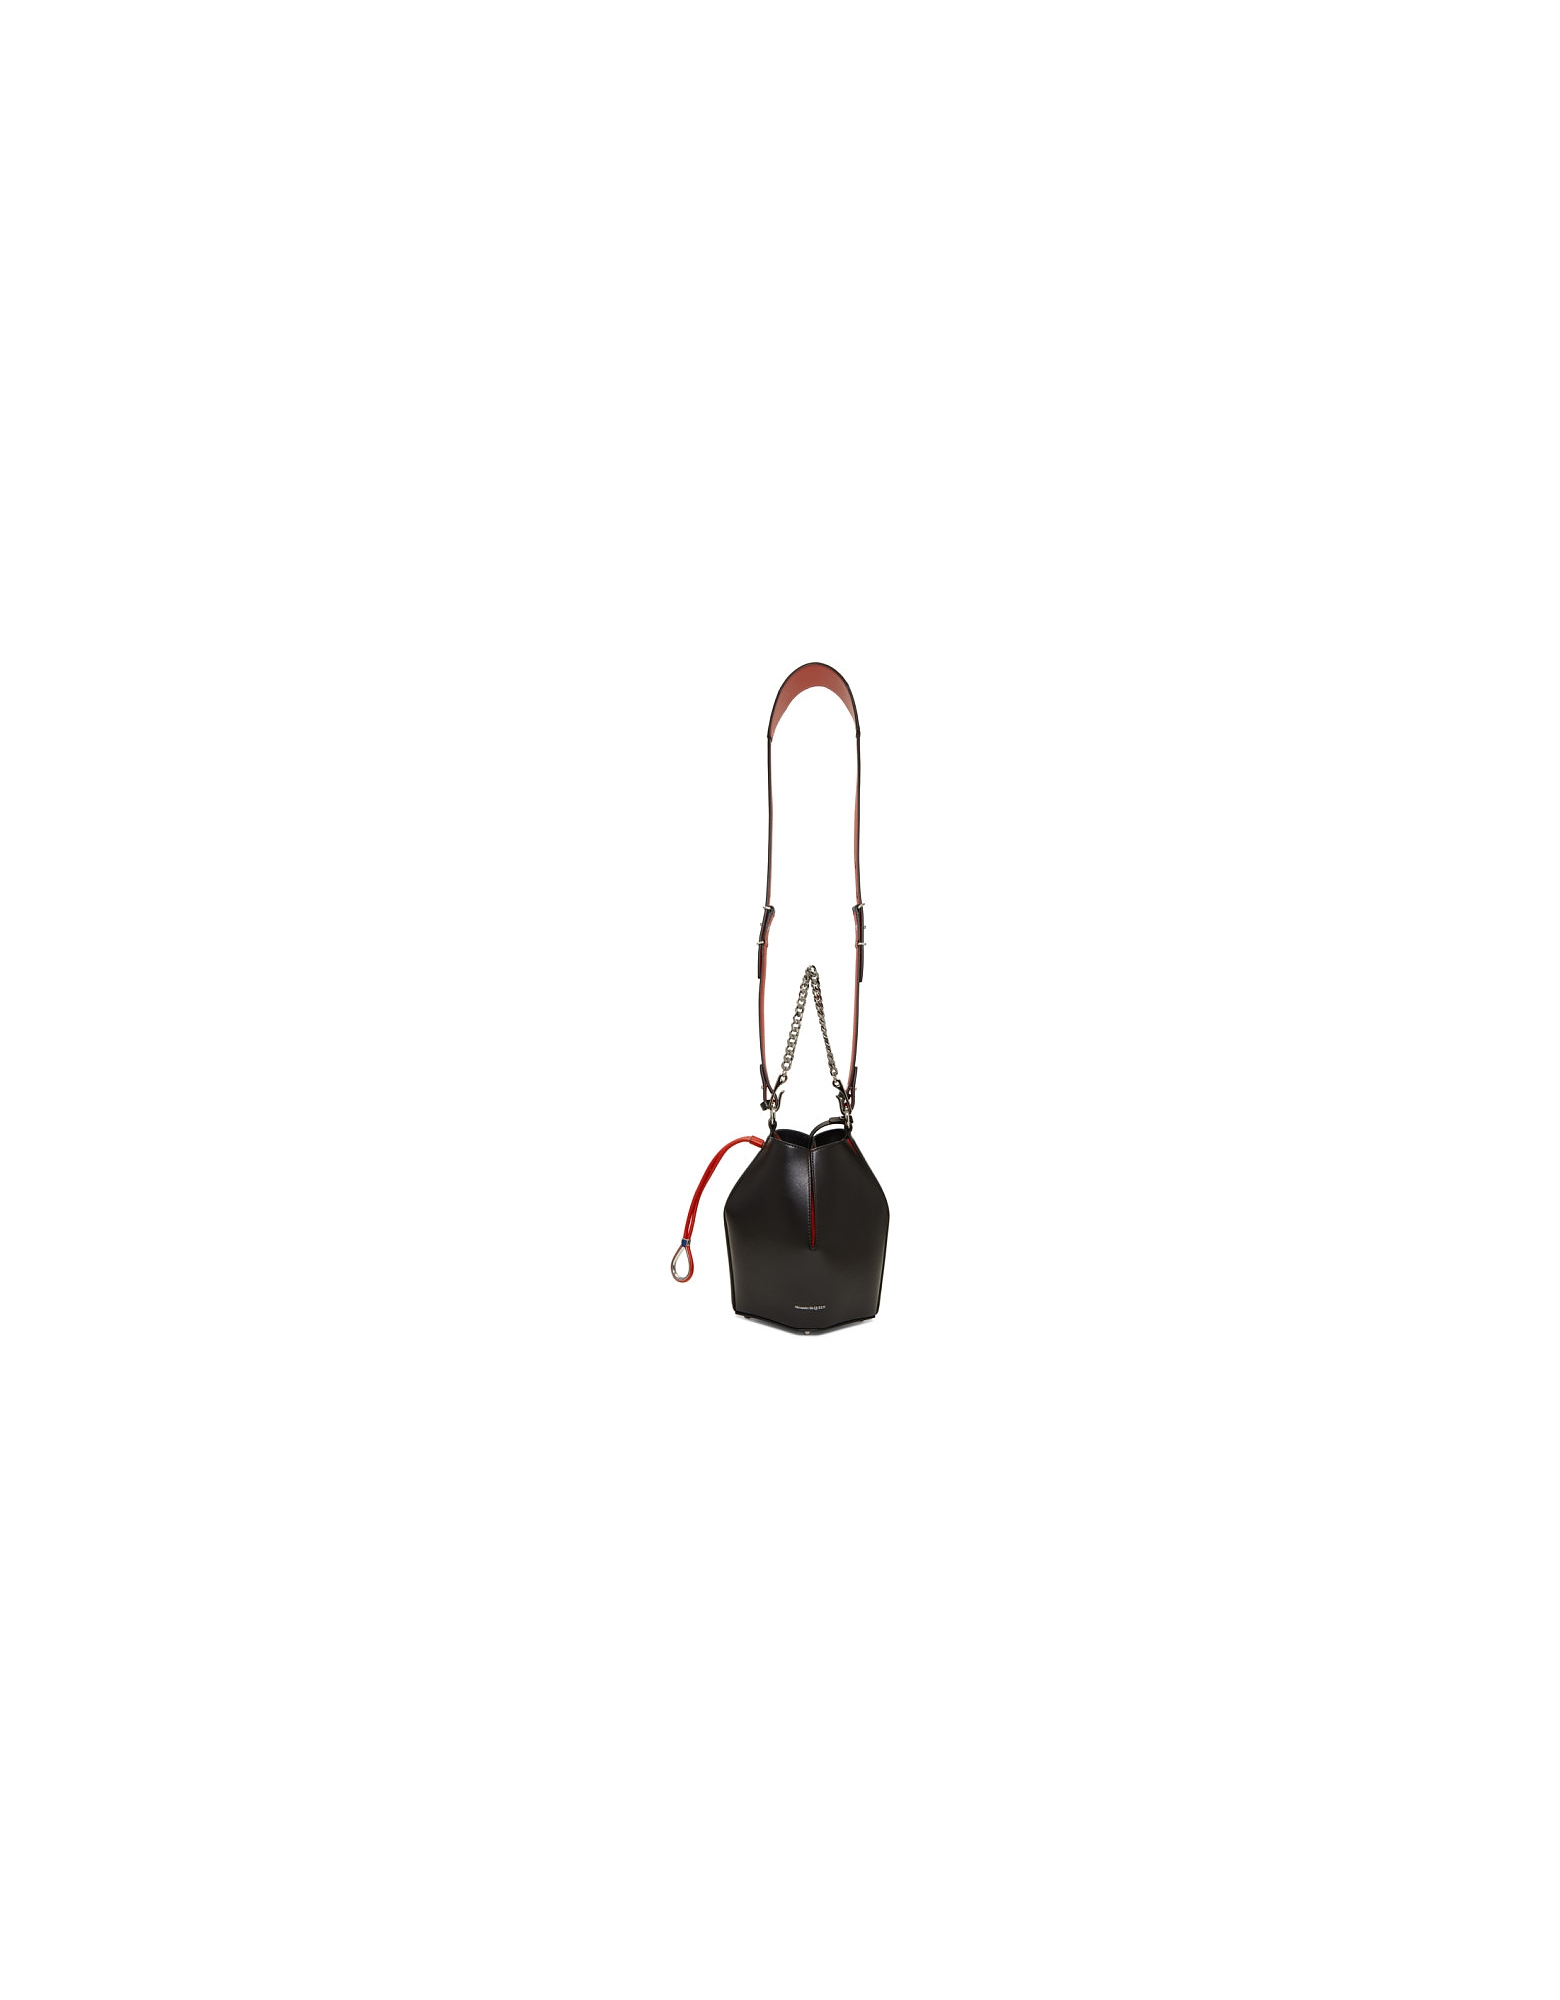 Alexander McQueen Designer Handbags, Black and Red Bucket Bag